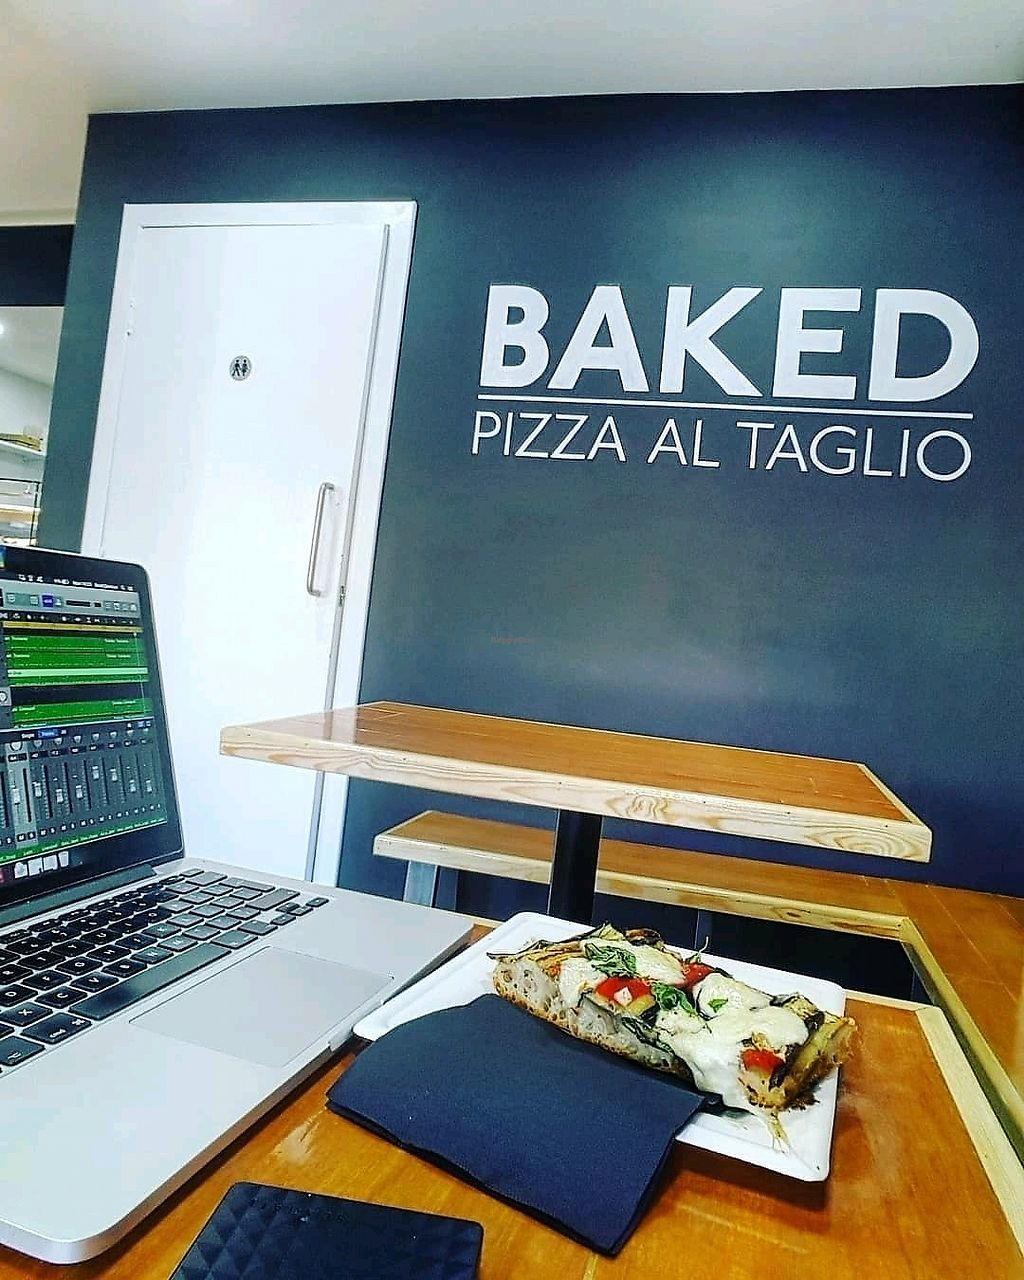 """Photo of Baked Pizza Al Taglio   by <a href=""""/members/profile/craigmc"""">craigmc</a> <br/>inside <br/> March 25, 2018  - <a href='/contact/abuse/image/115370/375981'>Report</a>"""